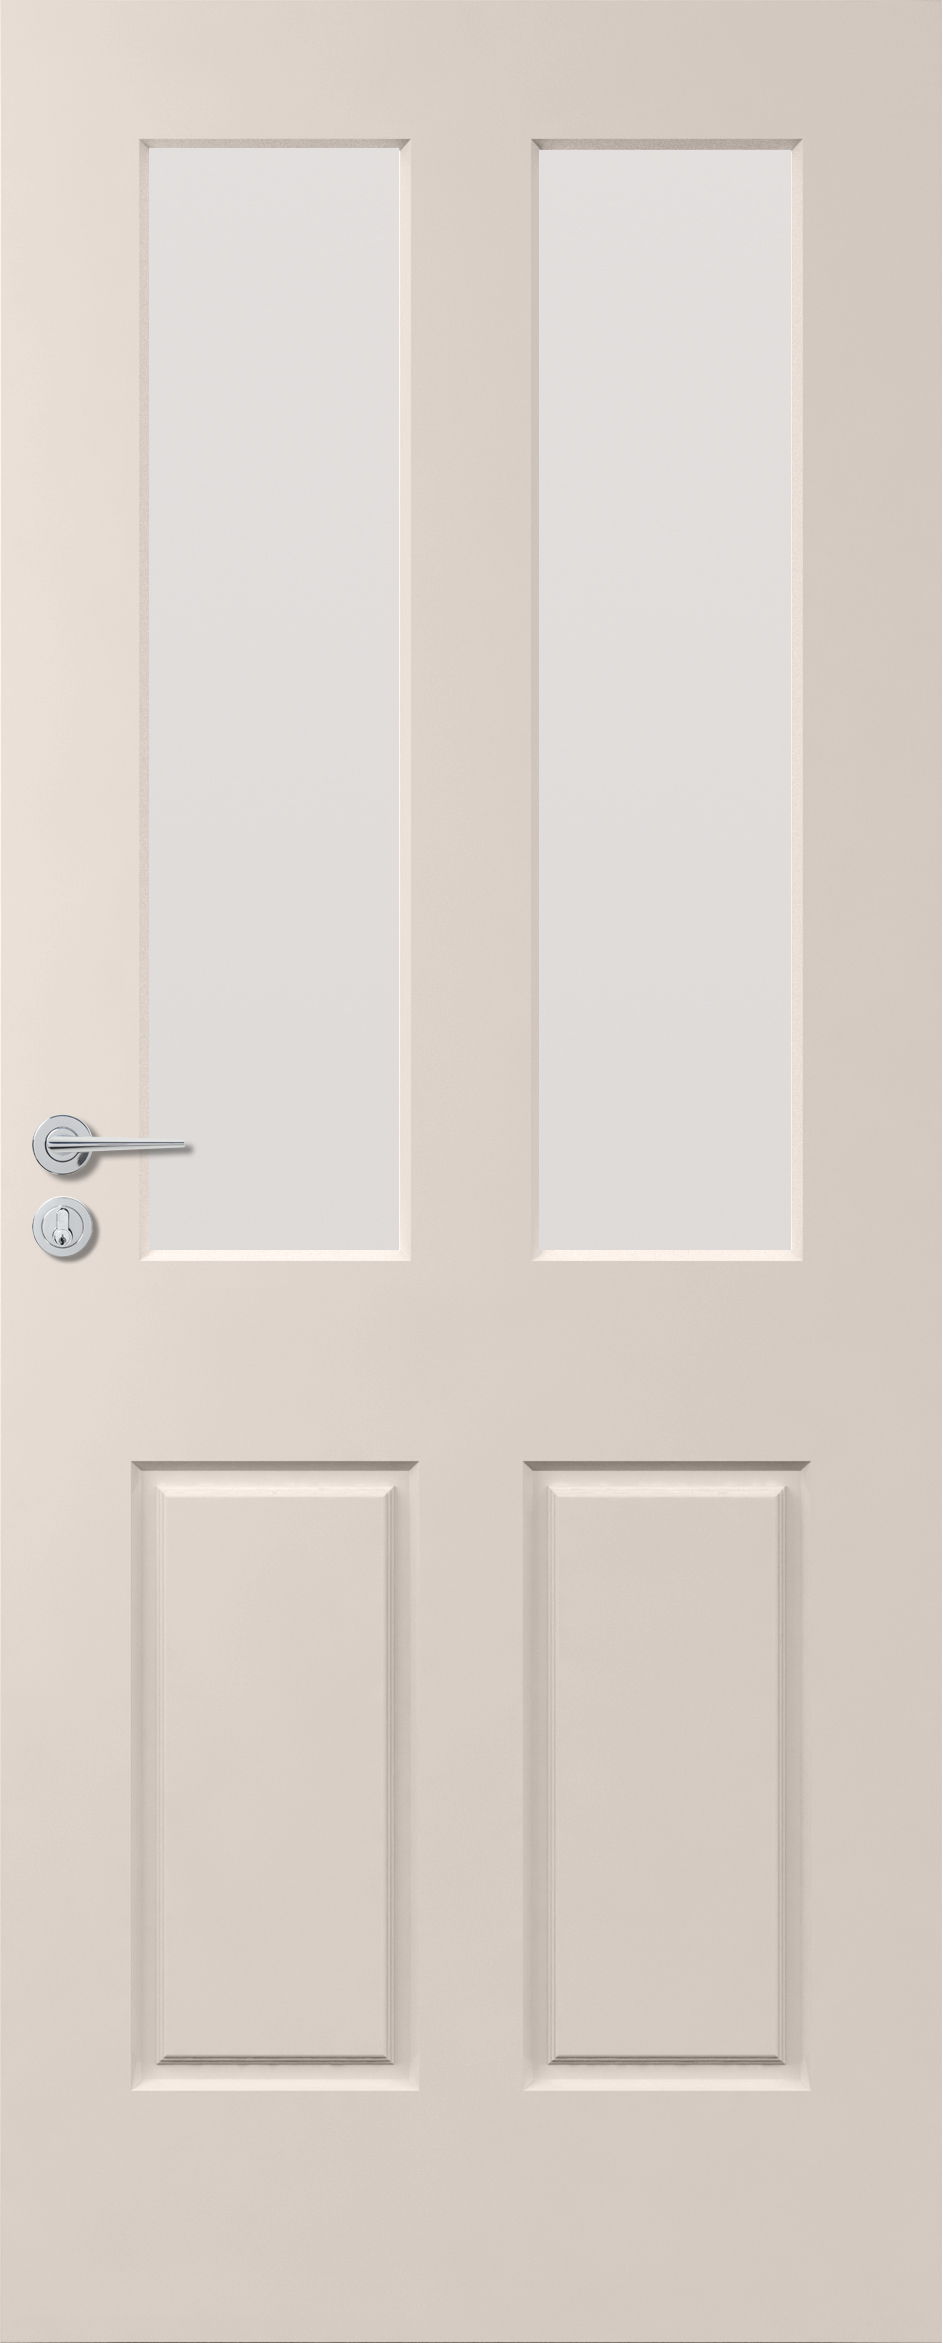 Corinthian Solidcarve Primed Exterior Door Featuring 2 Panels/2 Light Panels